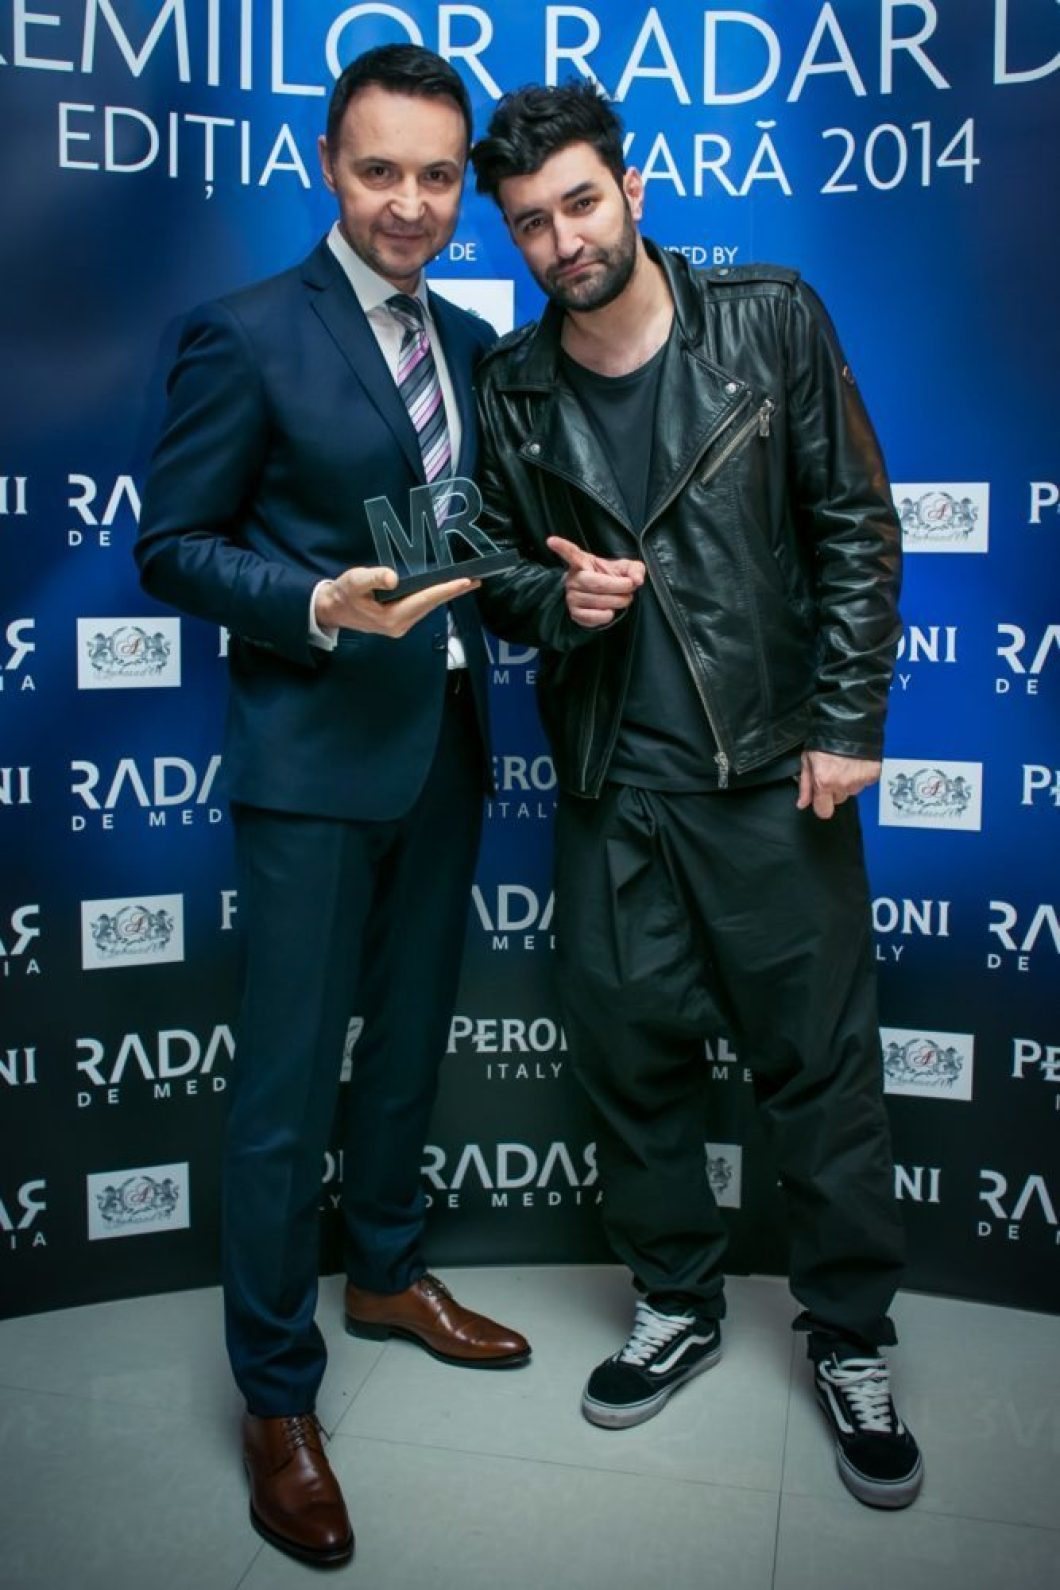 GALA PREMIILOR RADAR DE MEDIA 2014 (91) SMILEY SI NICUSOR STAN